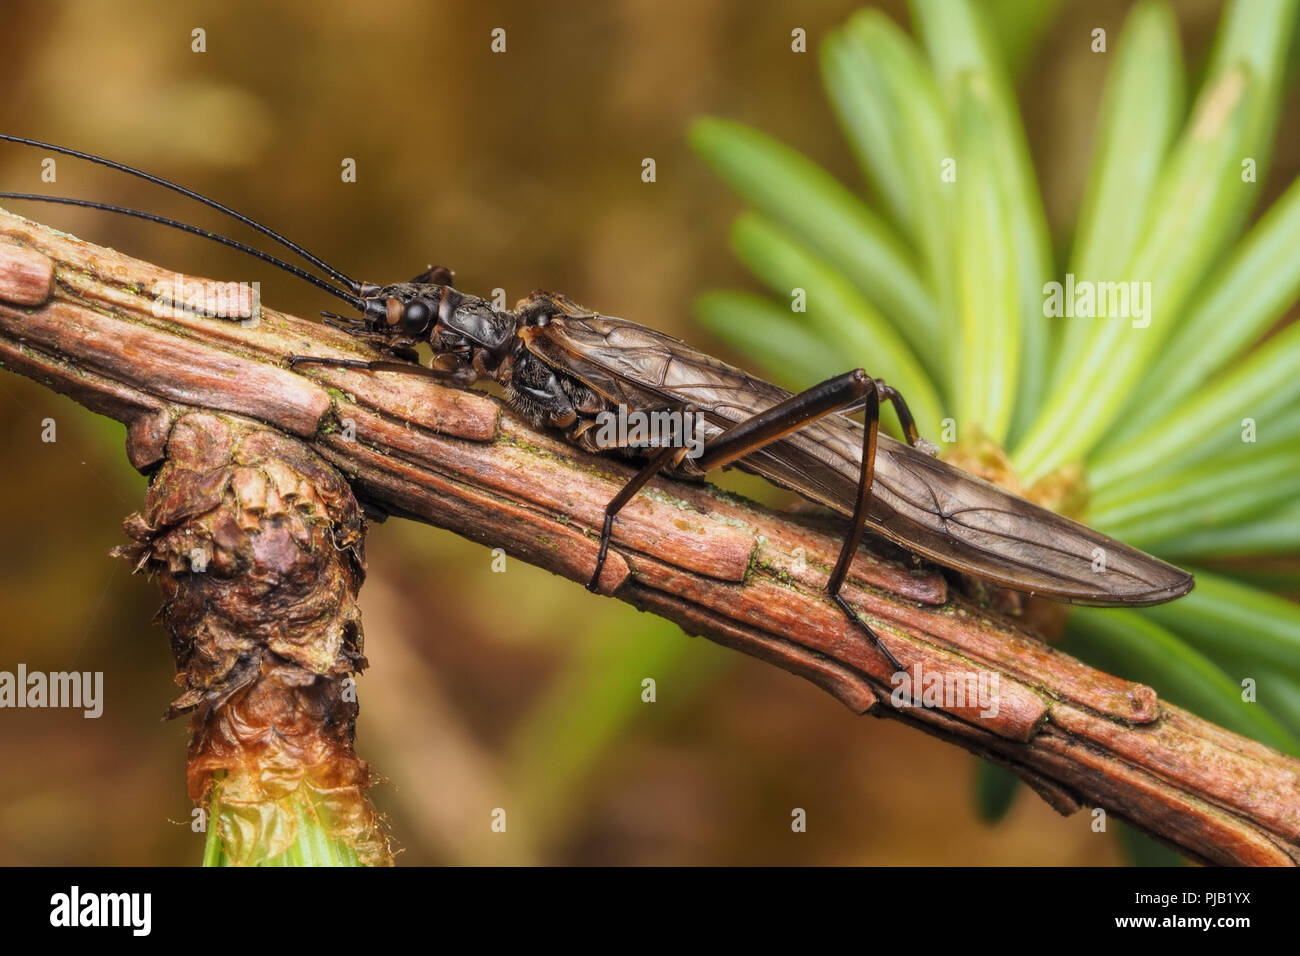 Stonefly perched on branch of conifer tree. Tipperary, Ireland - Stock Image